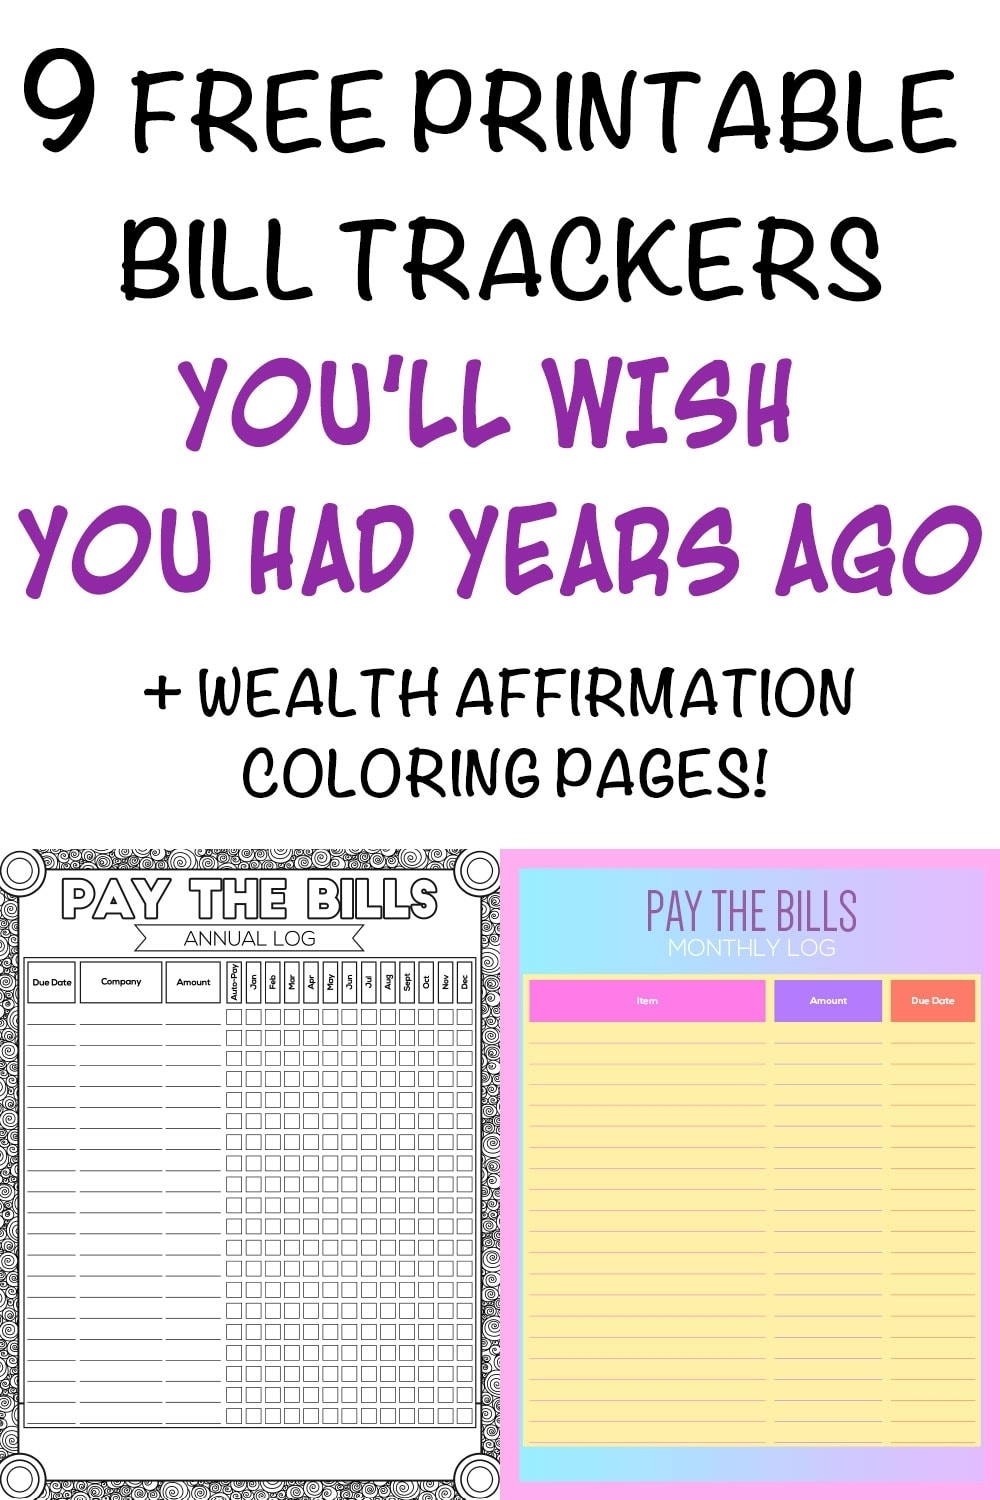 9 Printable Bill Payment Checklists And Bill Trackers - The Artisan Life regarding Monthly Bill Bill Checklist With Confirmation Number Column